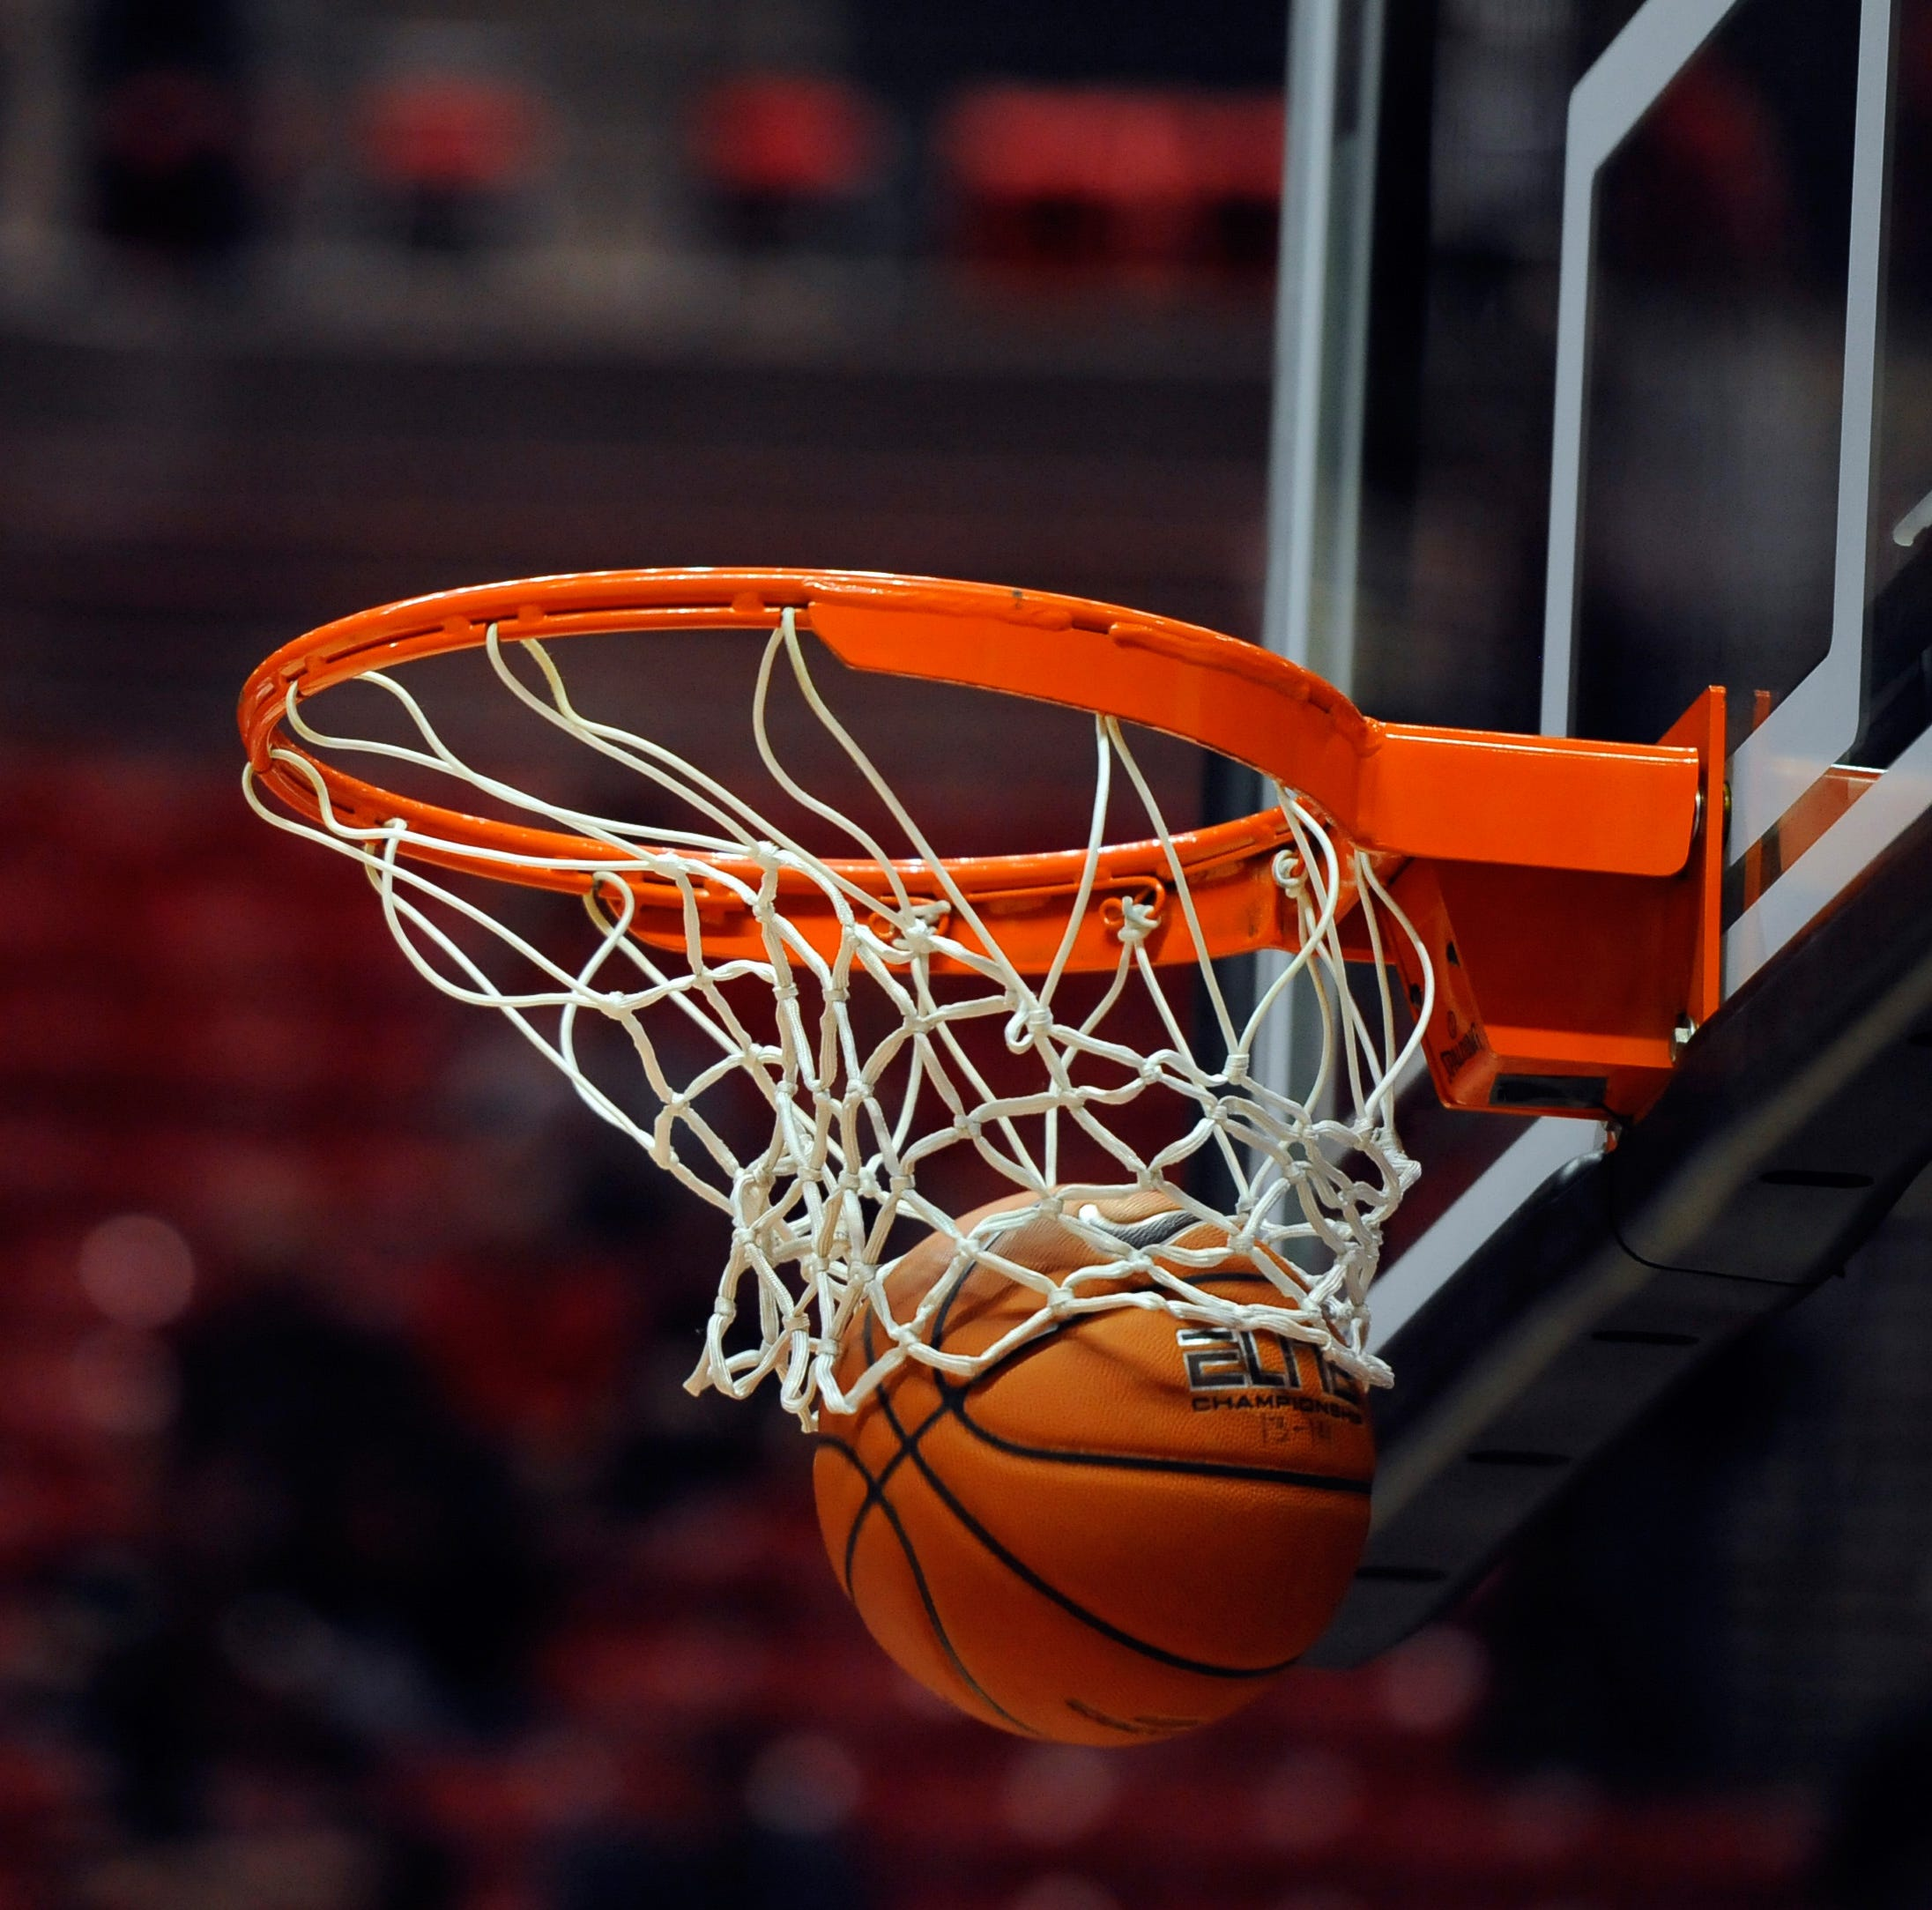 Scores from Saturday's SC high school basketball playoff games